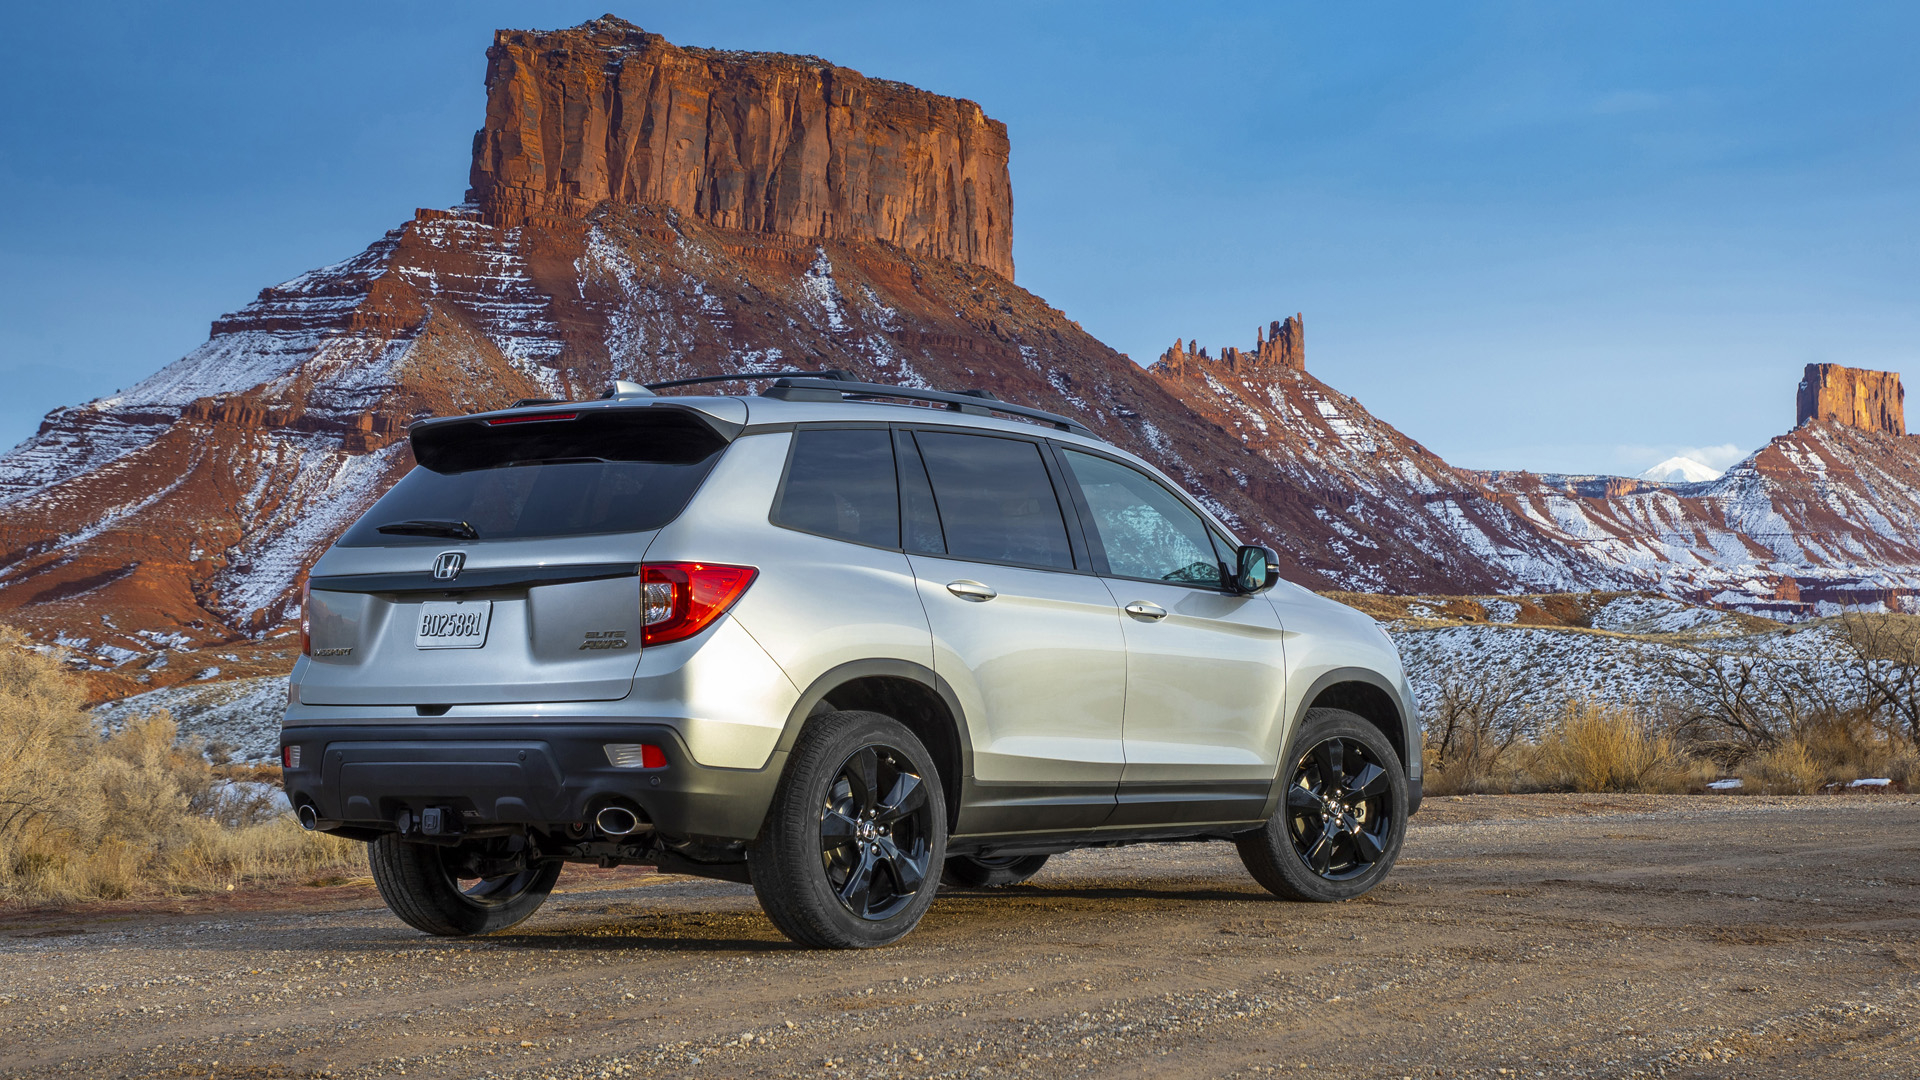 2021 Honda Passport Review | Price, specs, features and ...